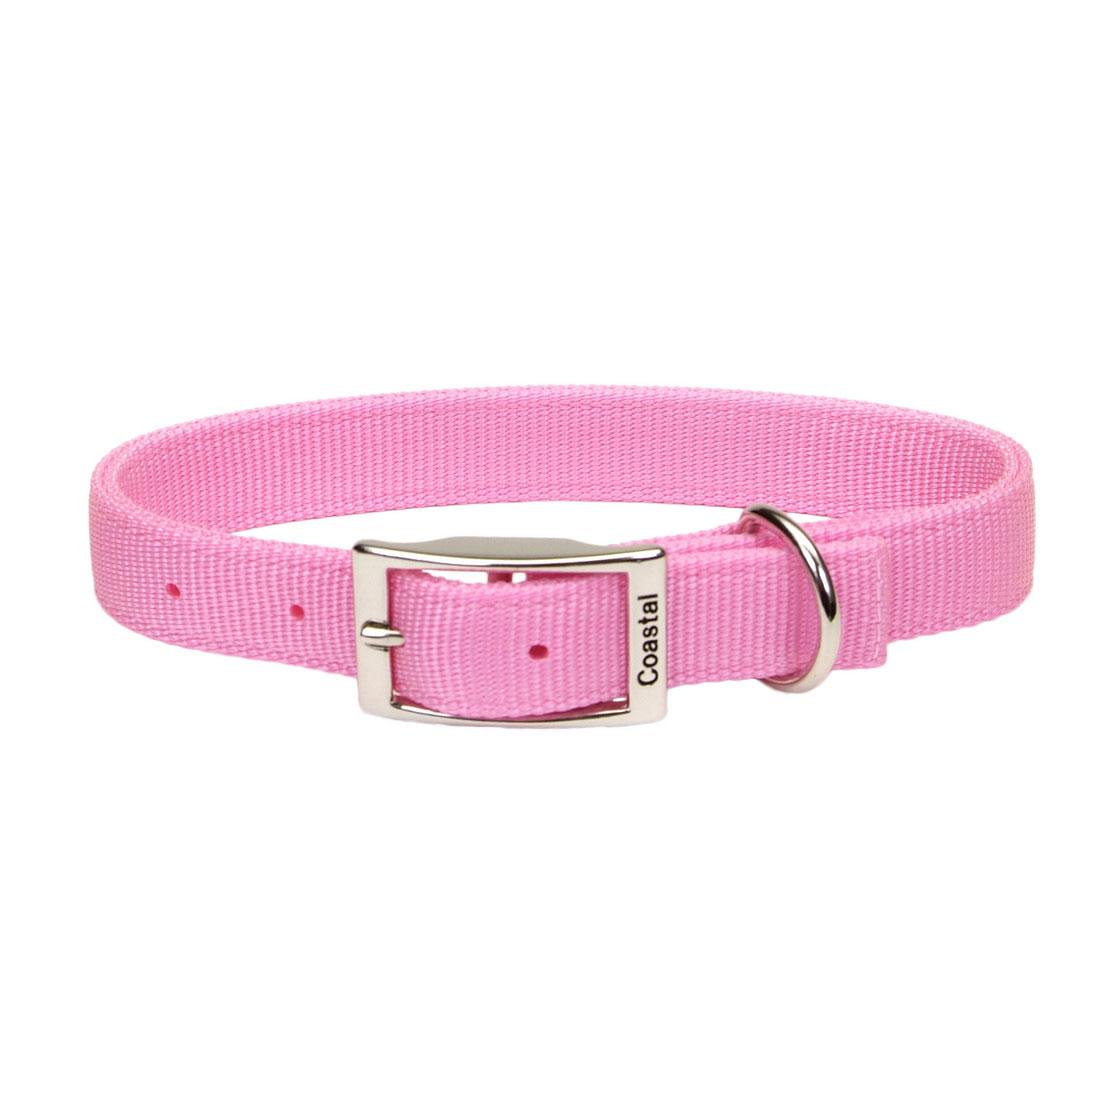 Coastal Double-Ply Dog Collar, Pink Bright, 1-in x 26-in